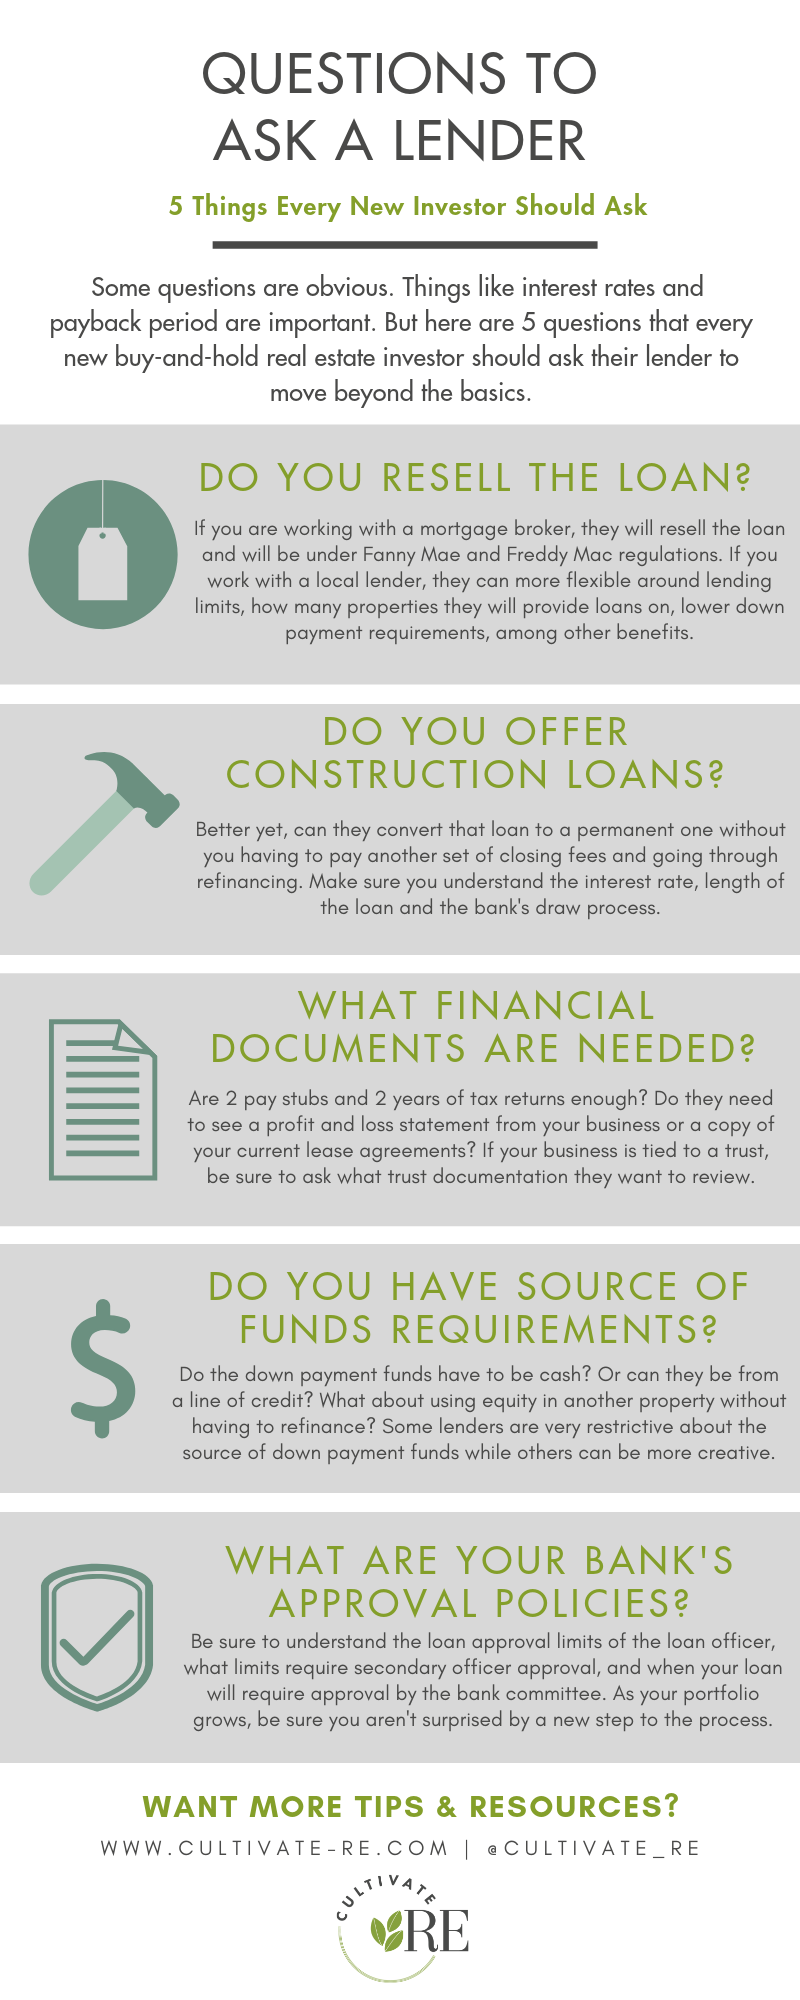 Cultivate RE Lender Questions